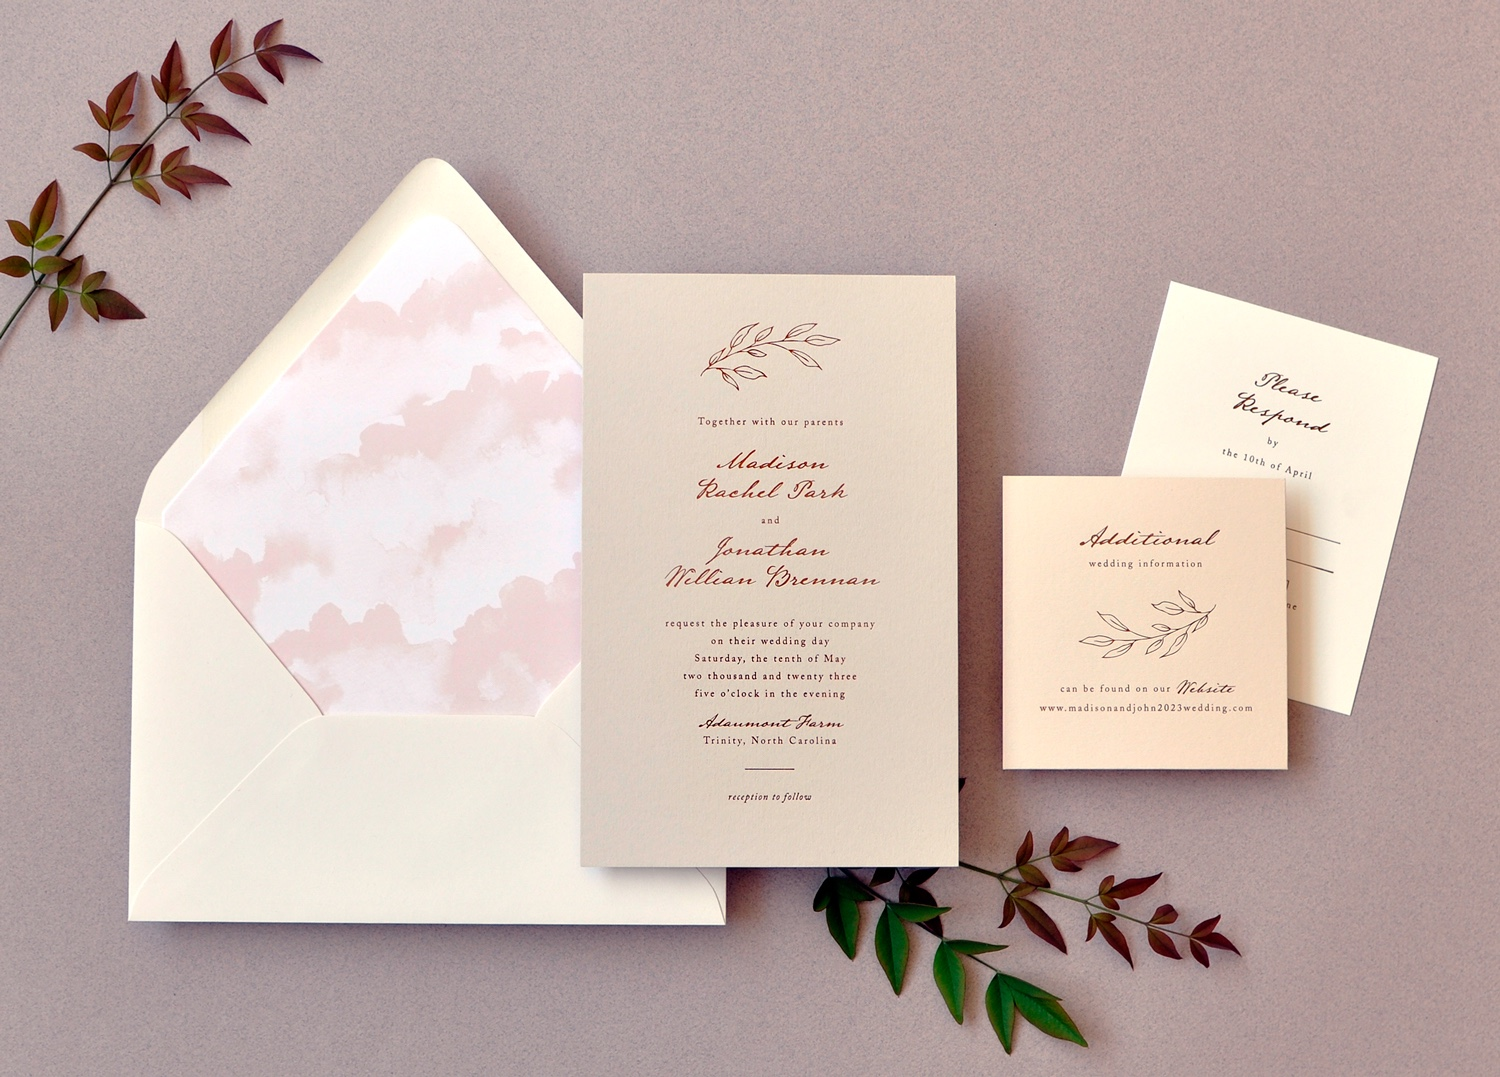 Shades of stone and cream, Madison, a luxury folil stamped wedding invitation features a delicate tree branch and a cloud-like envelope liner.